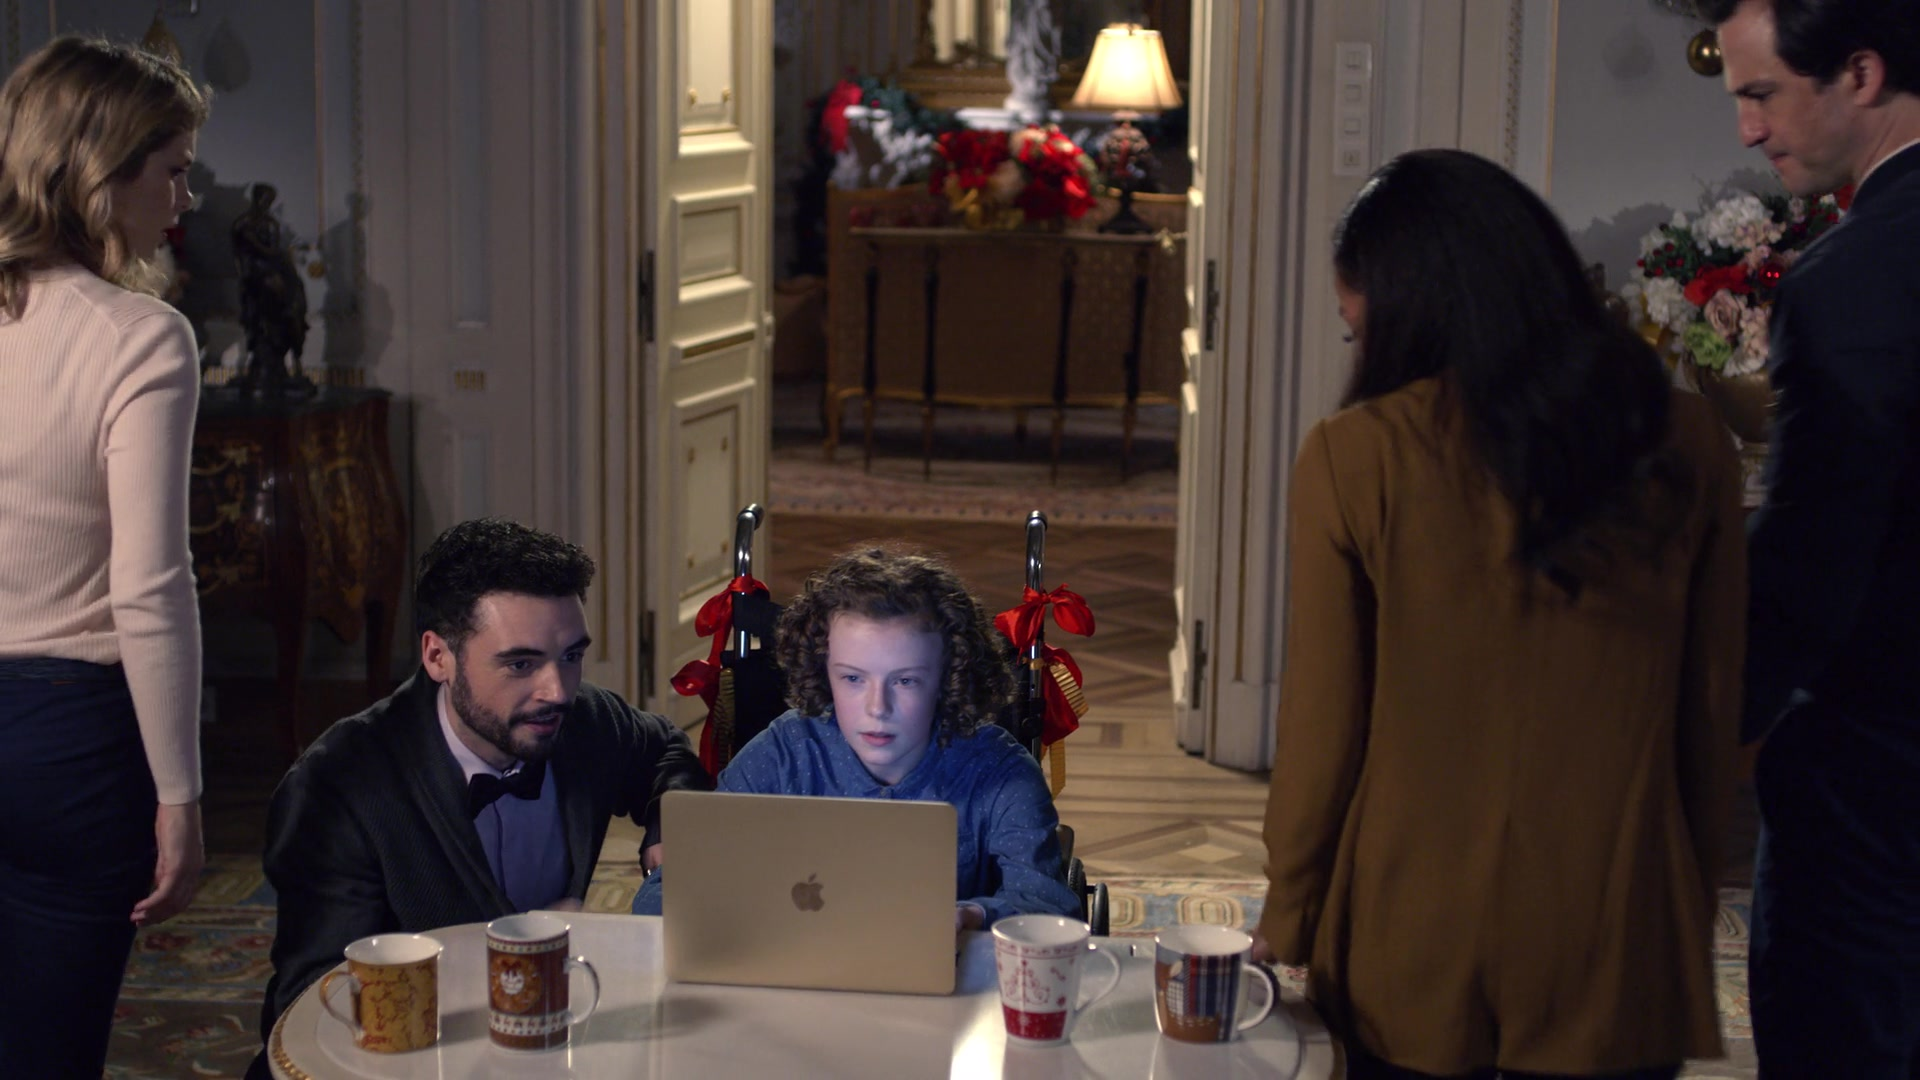 Apple MacBook Laptop Used by Honor Kneafsey in A Christmas Prince: The Royal Wedding (2018)